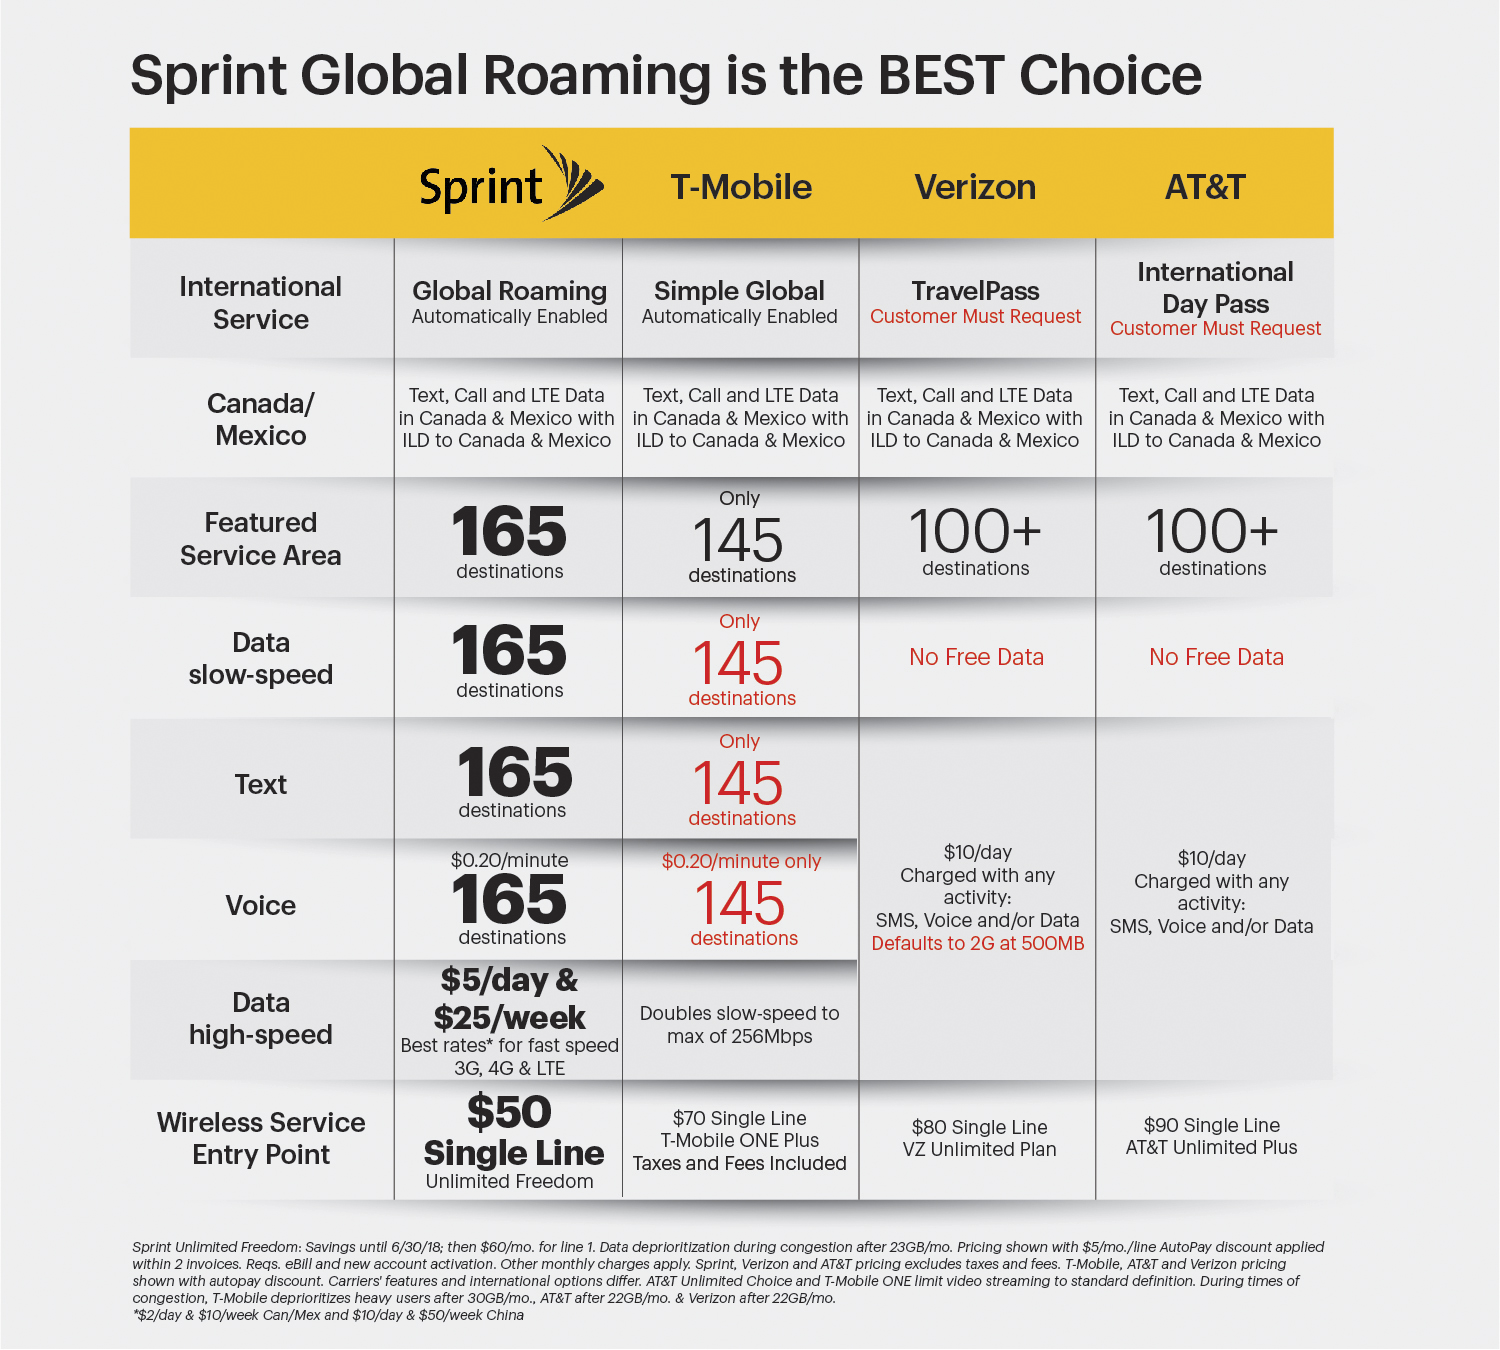 Sprint expands international roaming to 165 countries with free